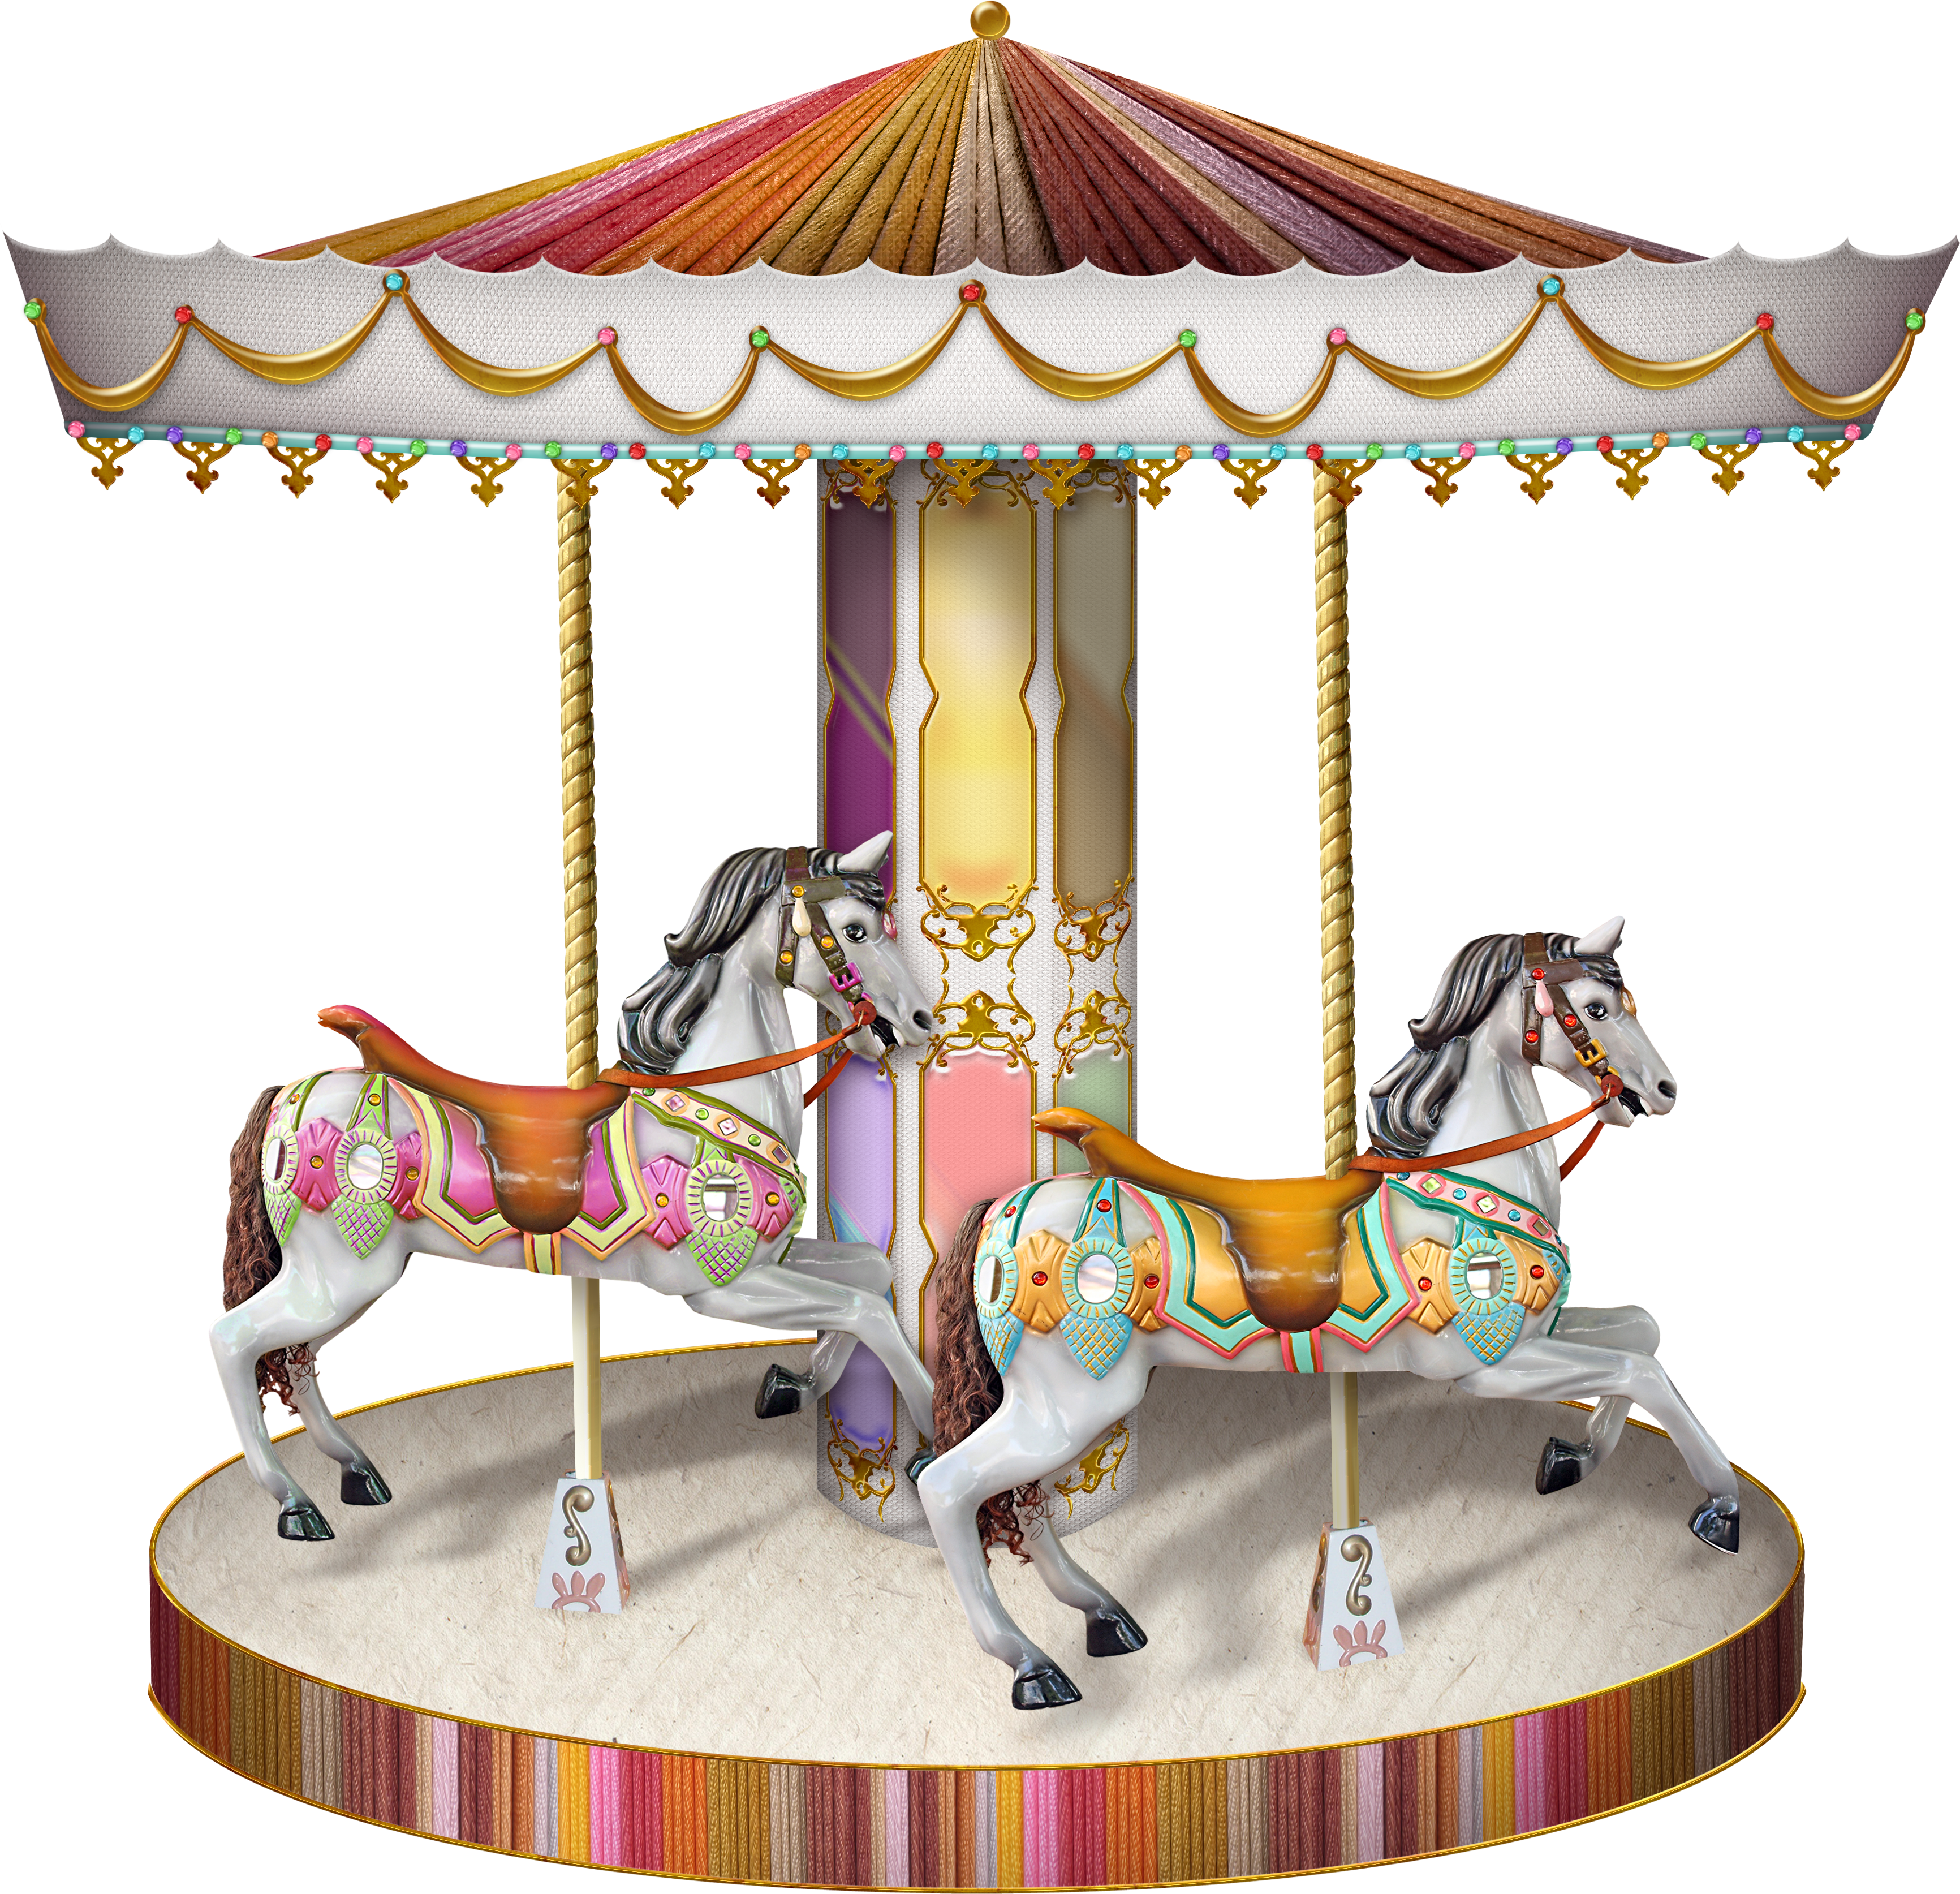 Png . Carousel clipart background image